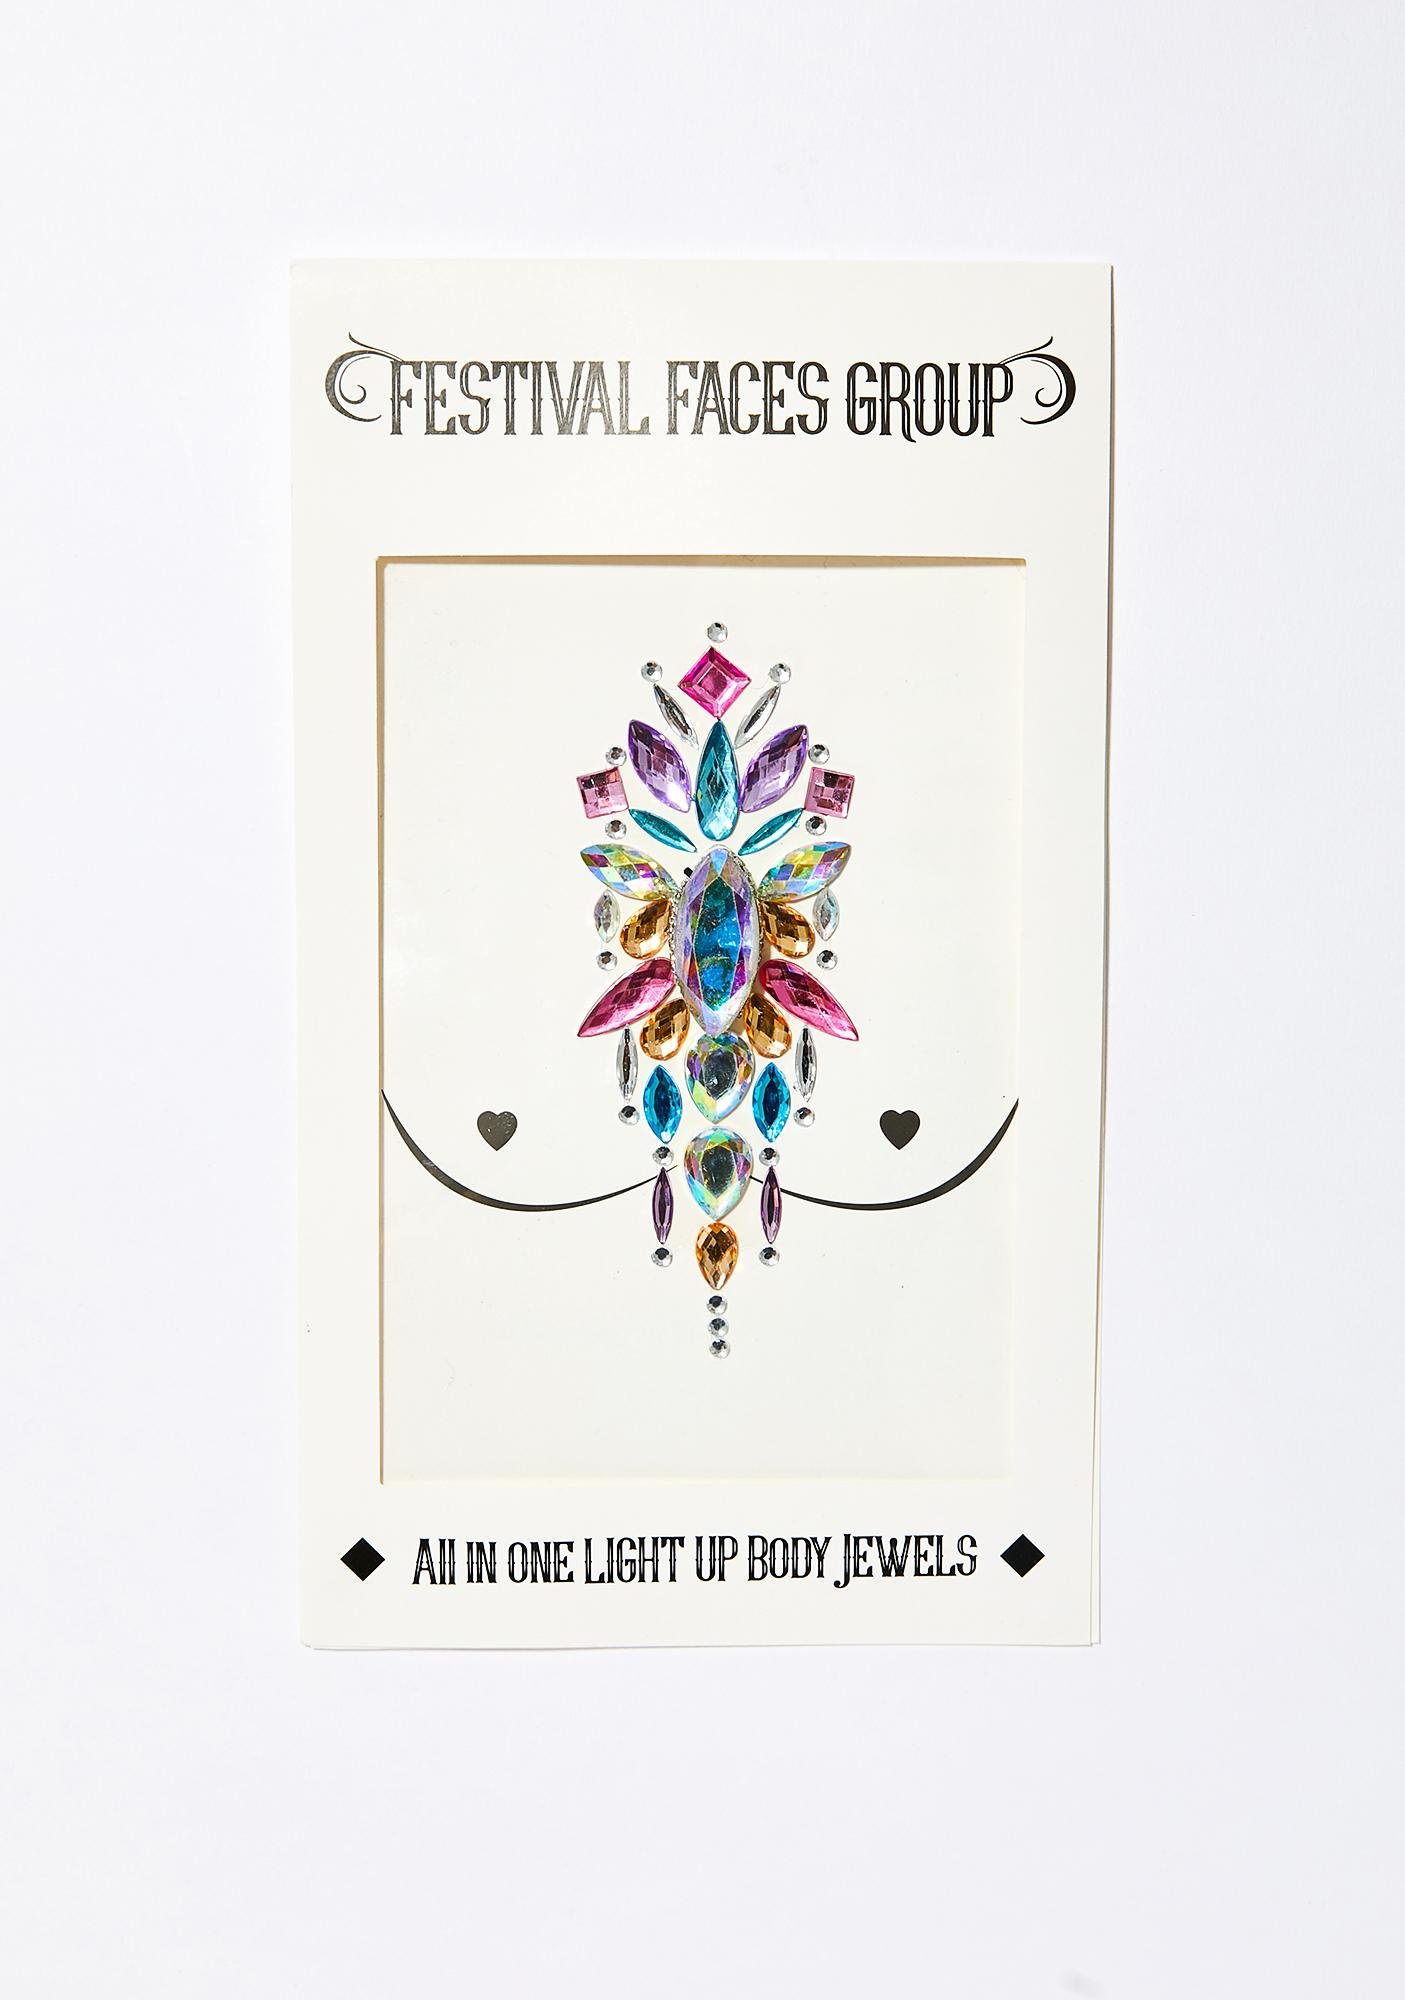 Festival Faces Group Light Up Body Jewels